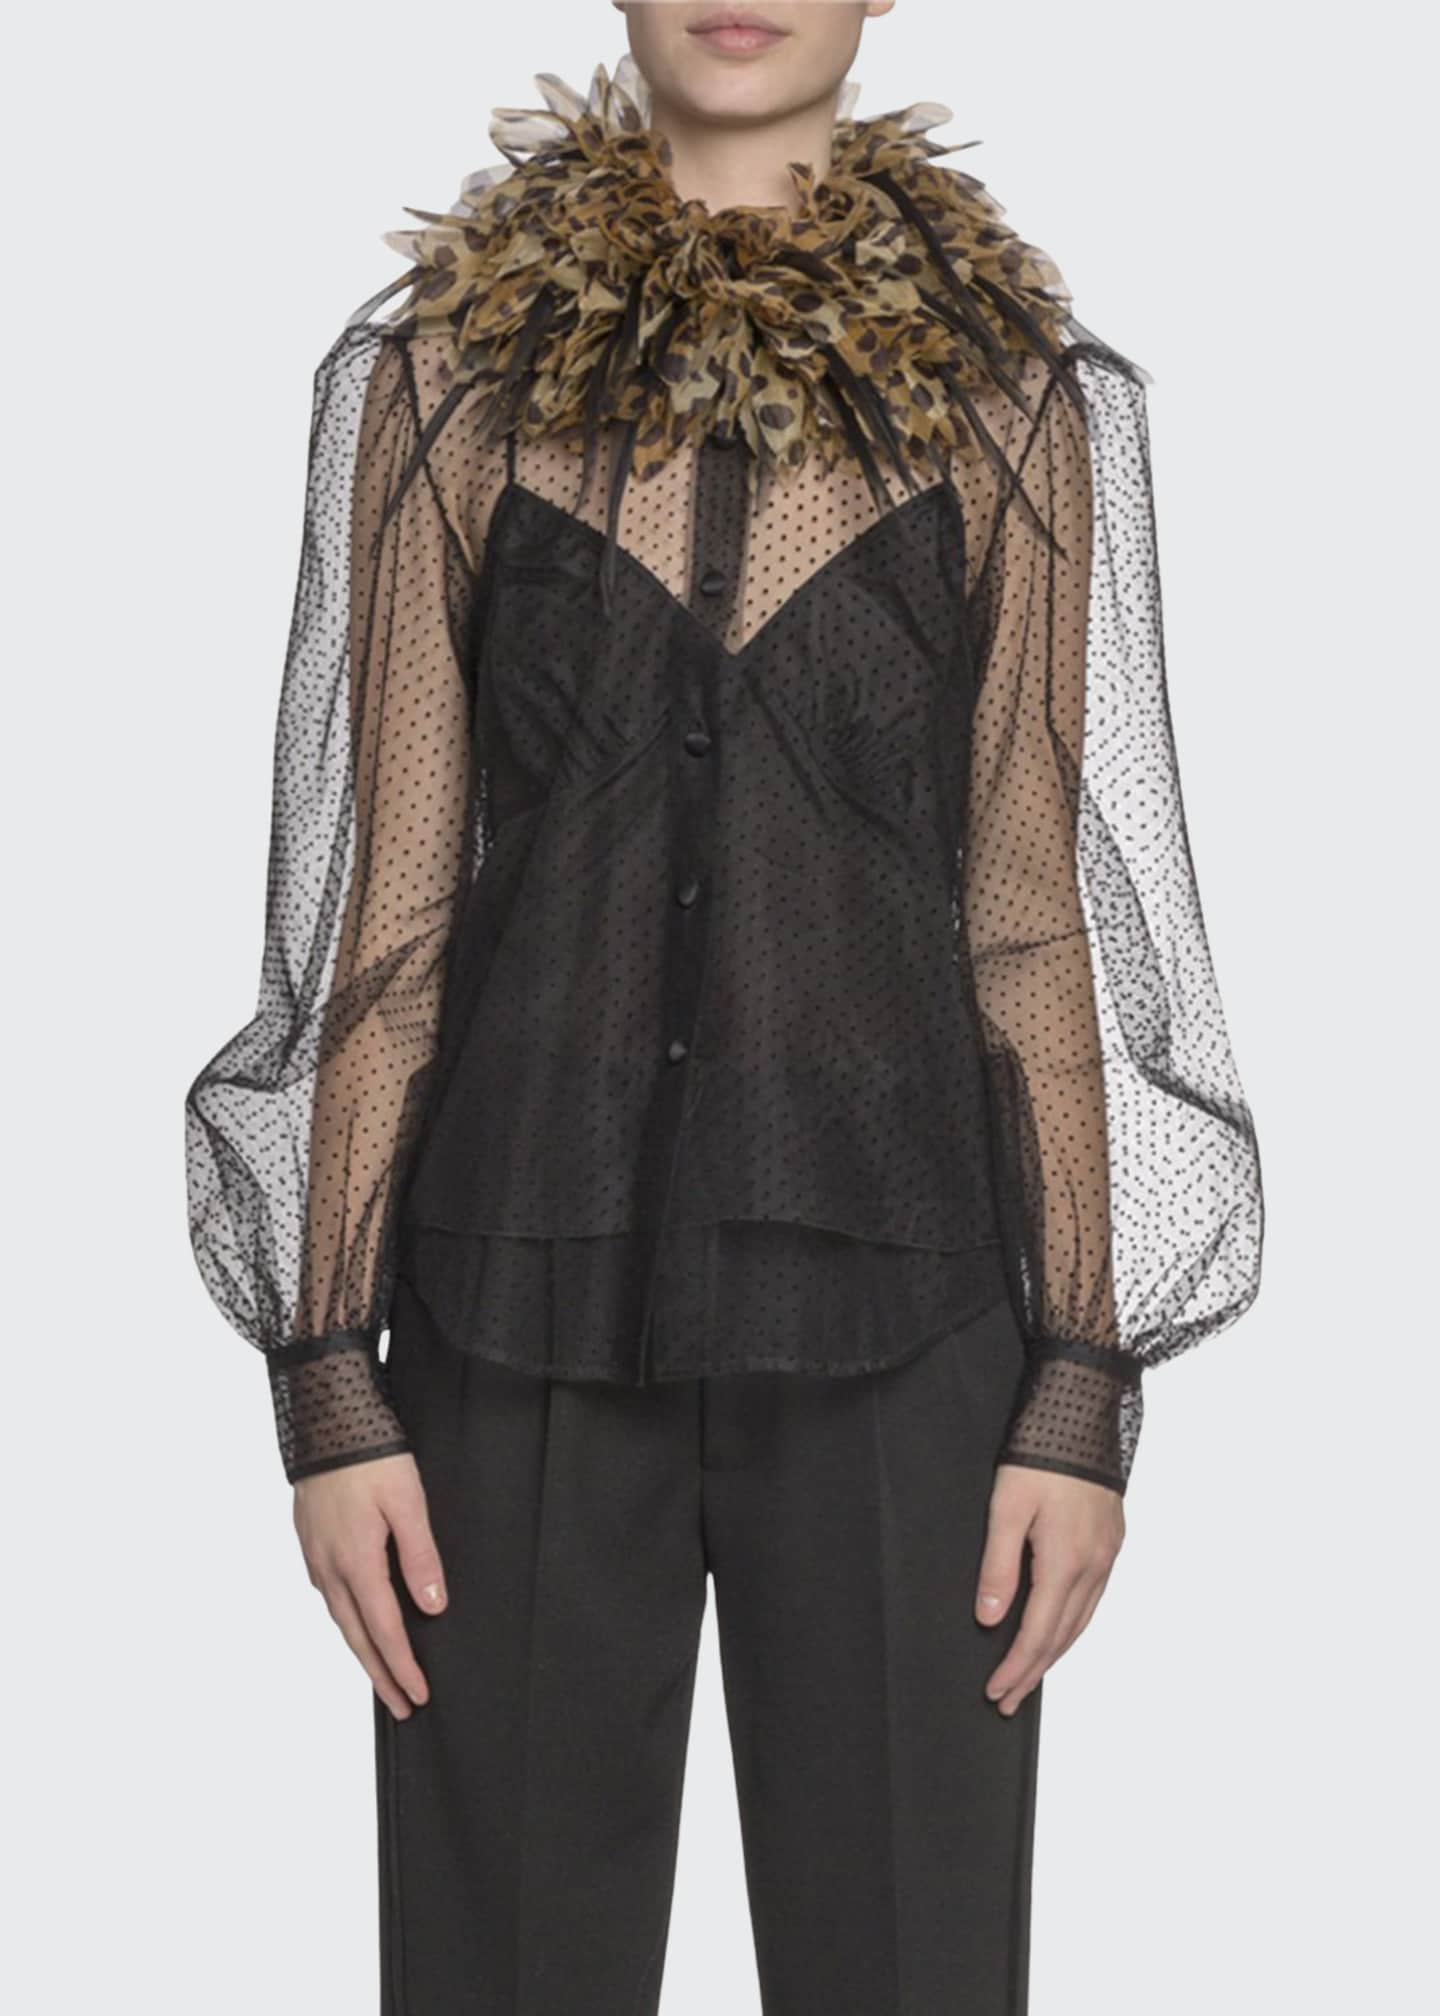 Marc Jacobs (Runway) Button-Front Blouse